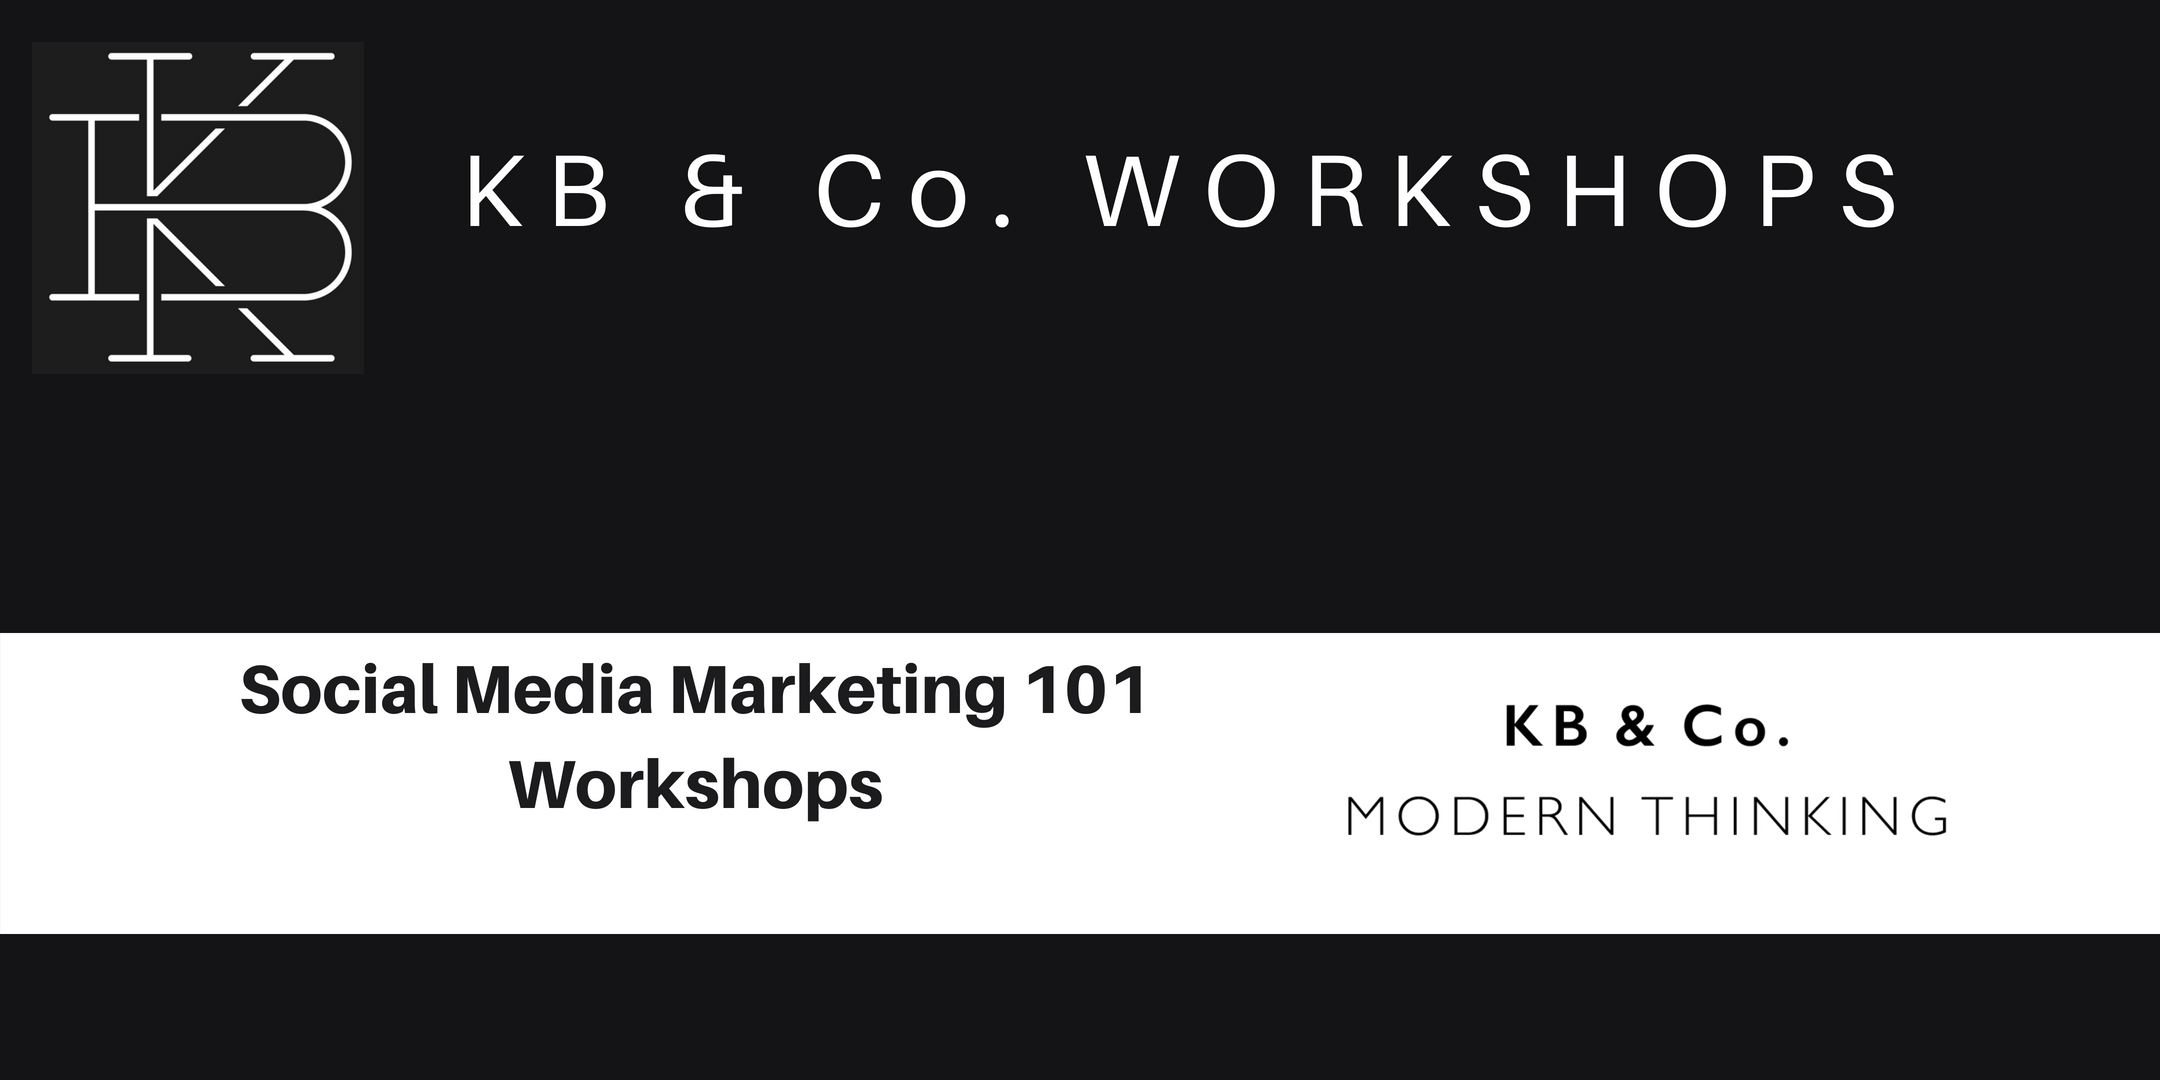 Social Media Marketing 101 Workshop